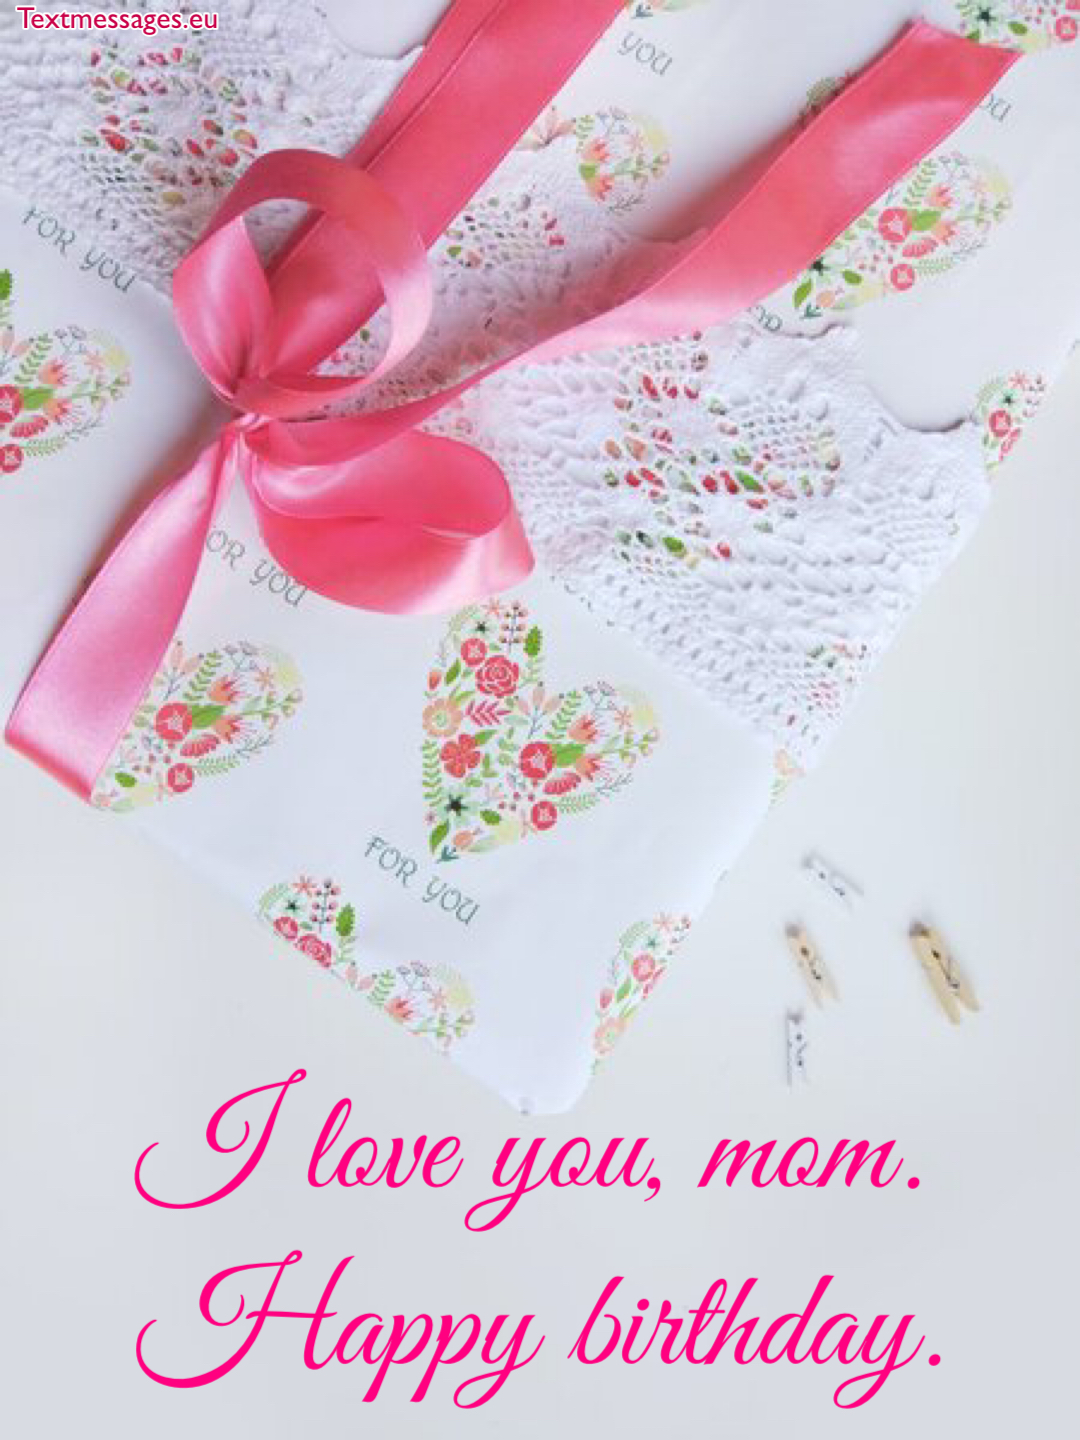 Top 30 Happy Birthday Messages For Mom With Images